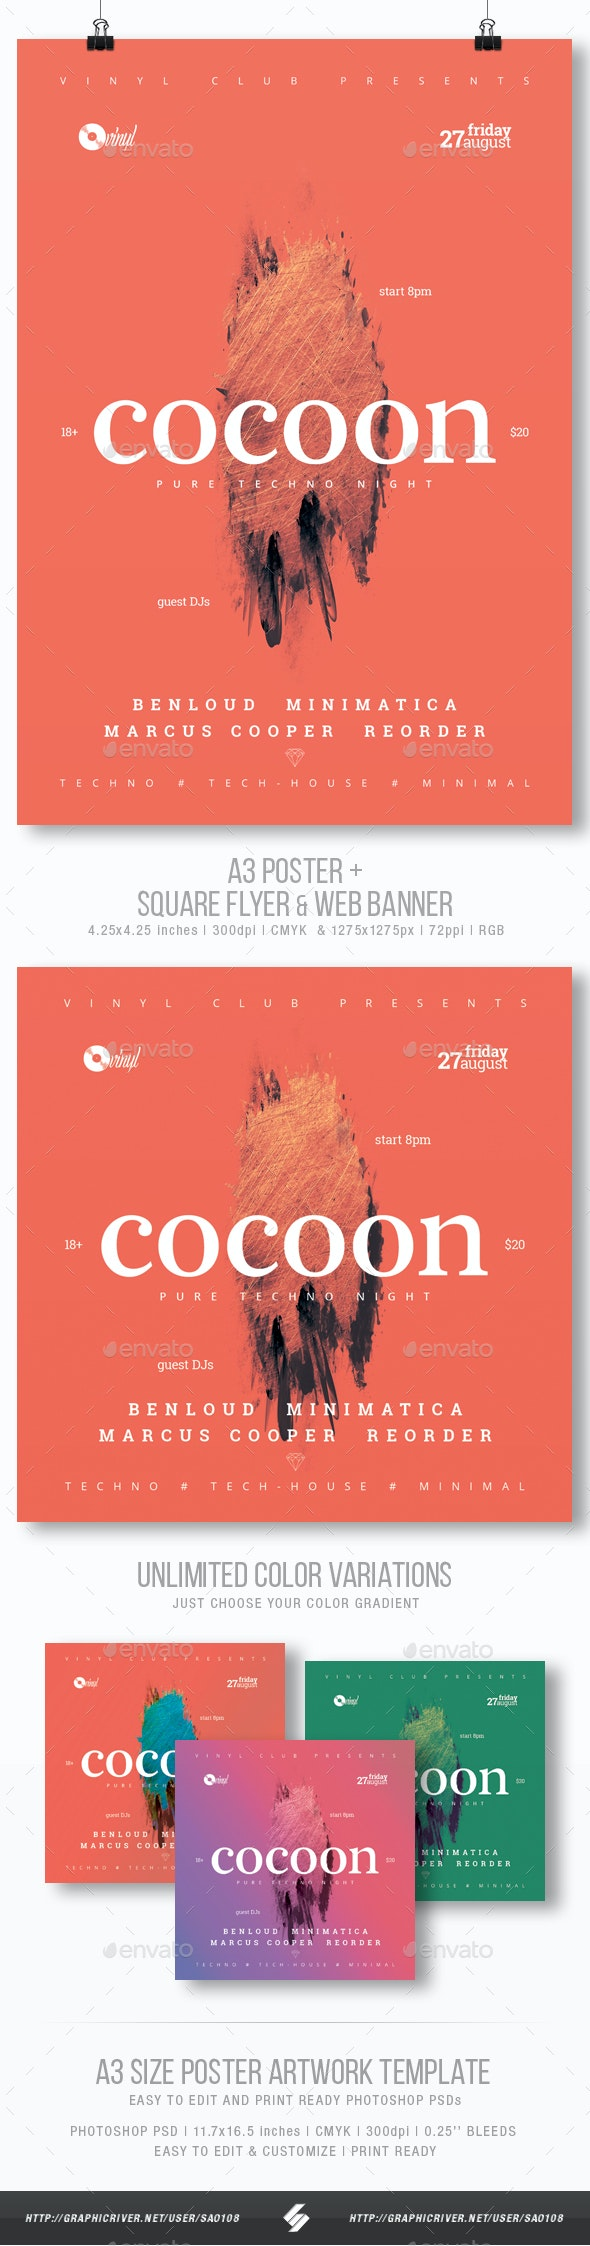 Cocoon - Minimal Party Flyer / Poster Template A3 - Clubs & Parties Events